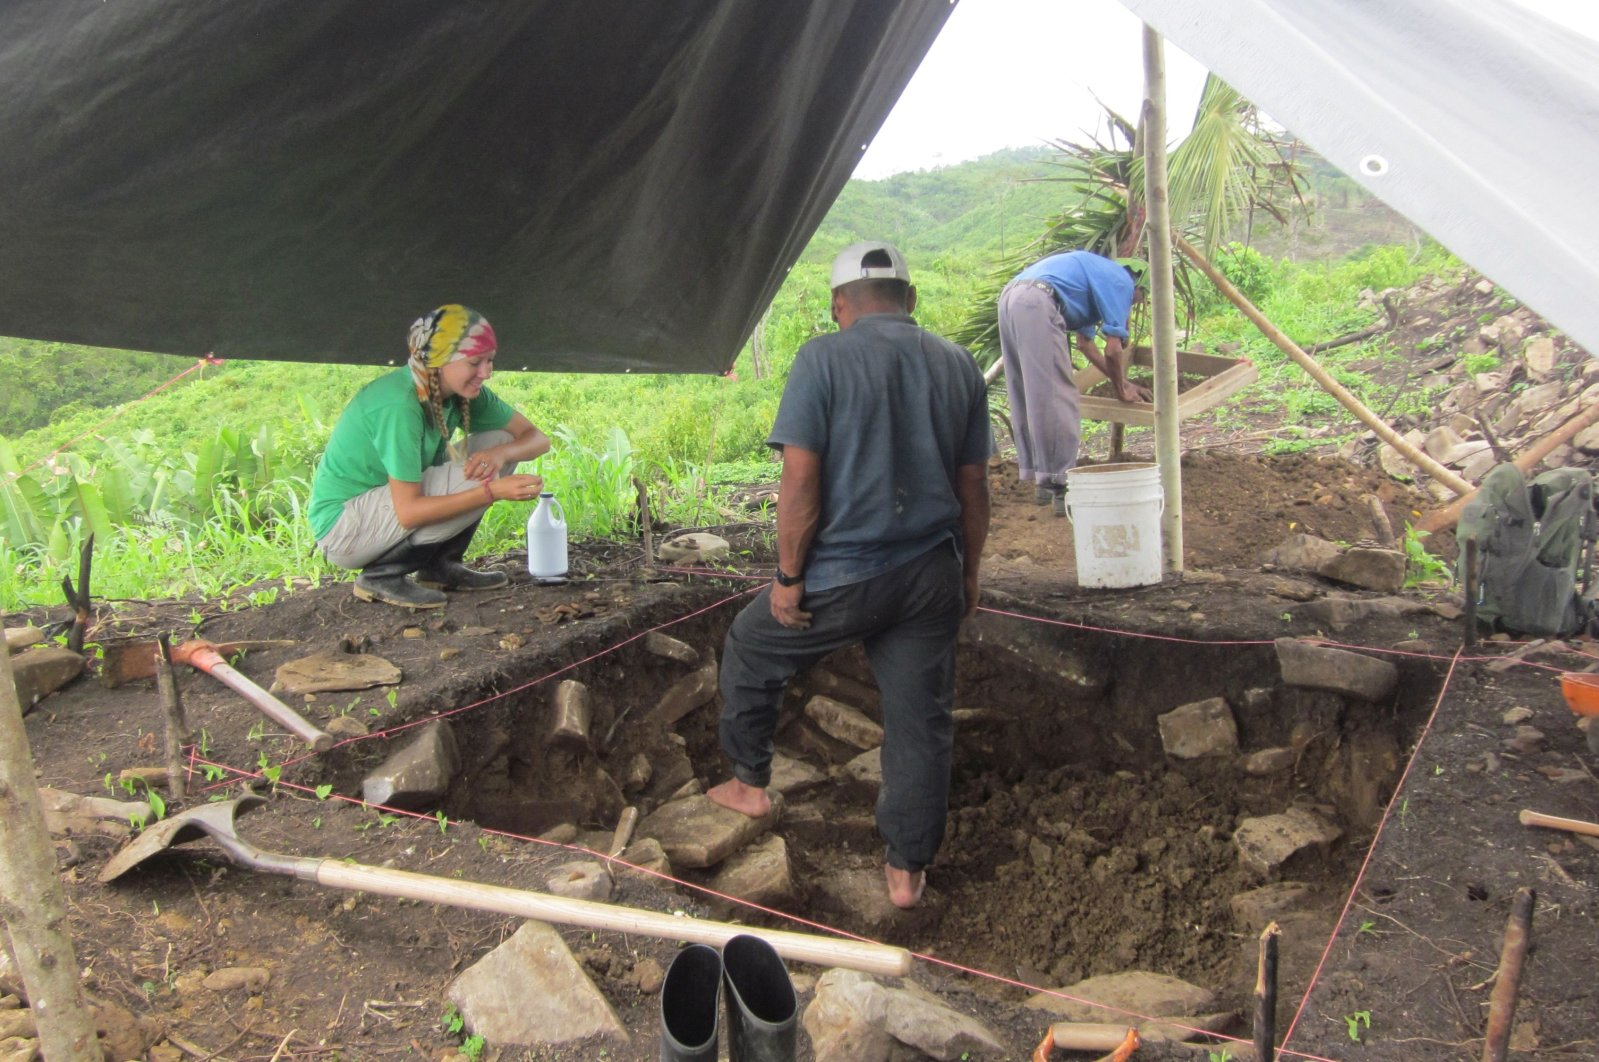 Archeologist Amy Thompson speaks with members of the local community who worked with the team of researchers during excavations at the ancient Maya site of Uxbenka, Belize in April 2012.  (Handout via REUTERS)